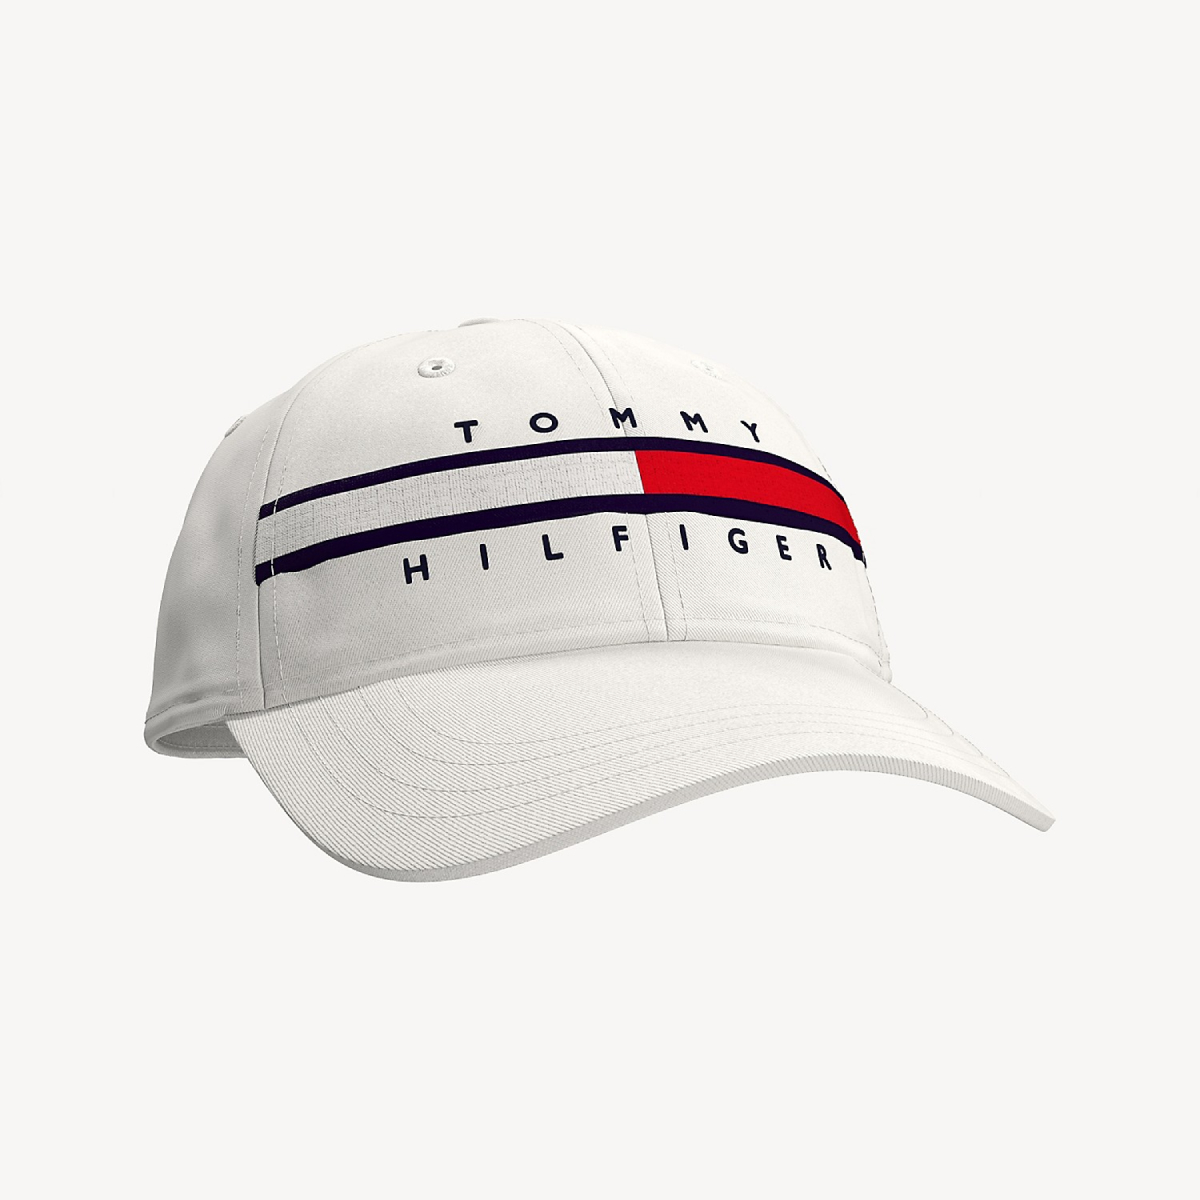 non-tommy-hilfiger-69